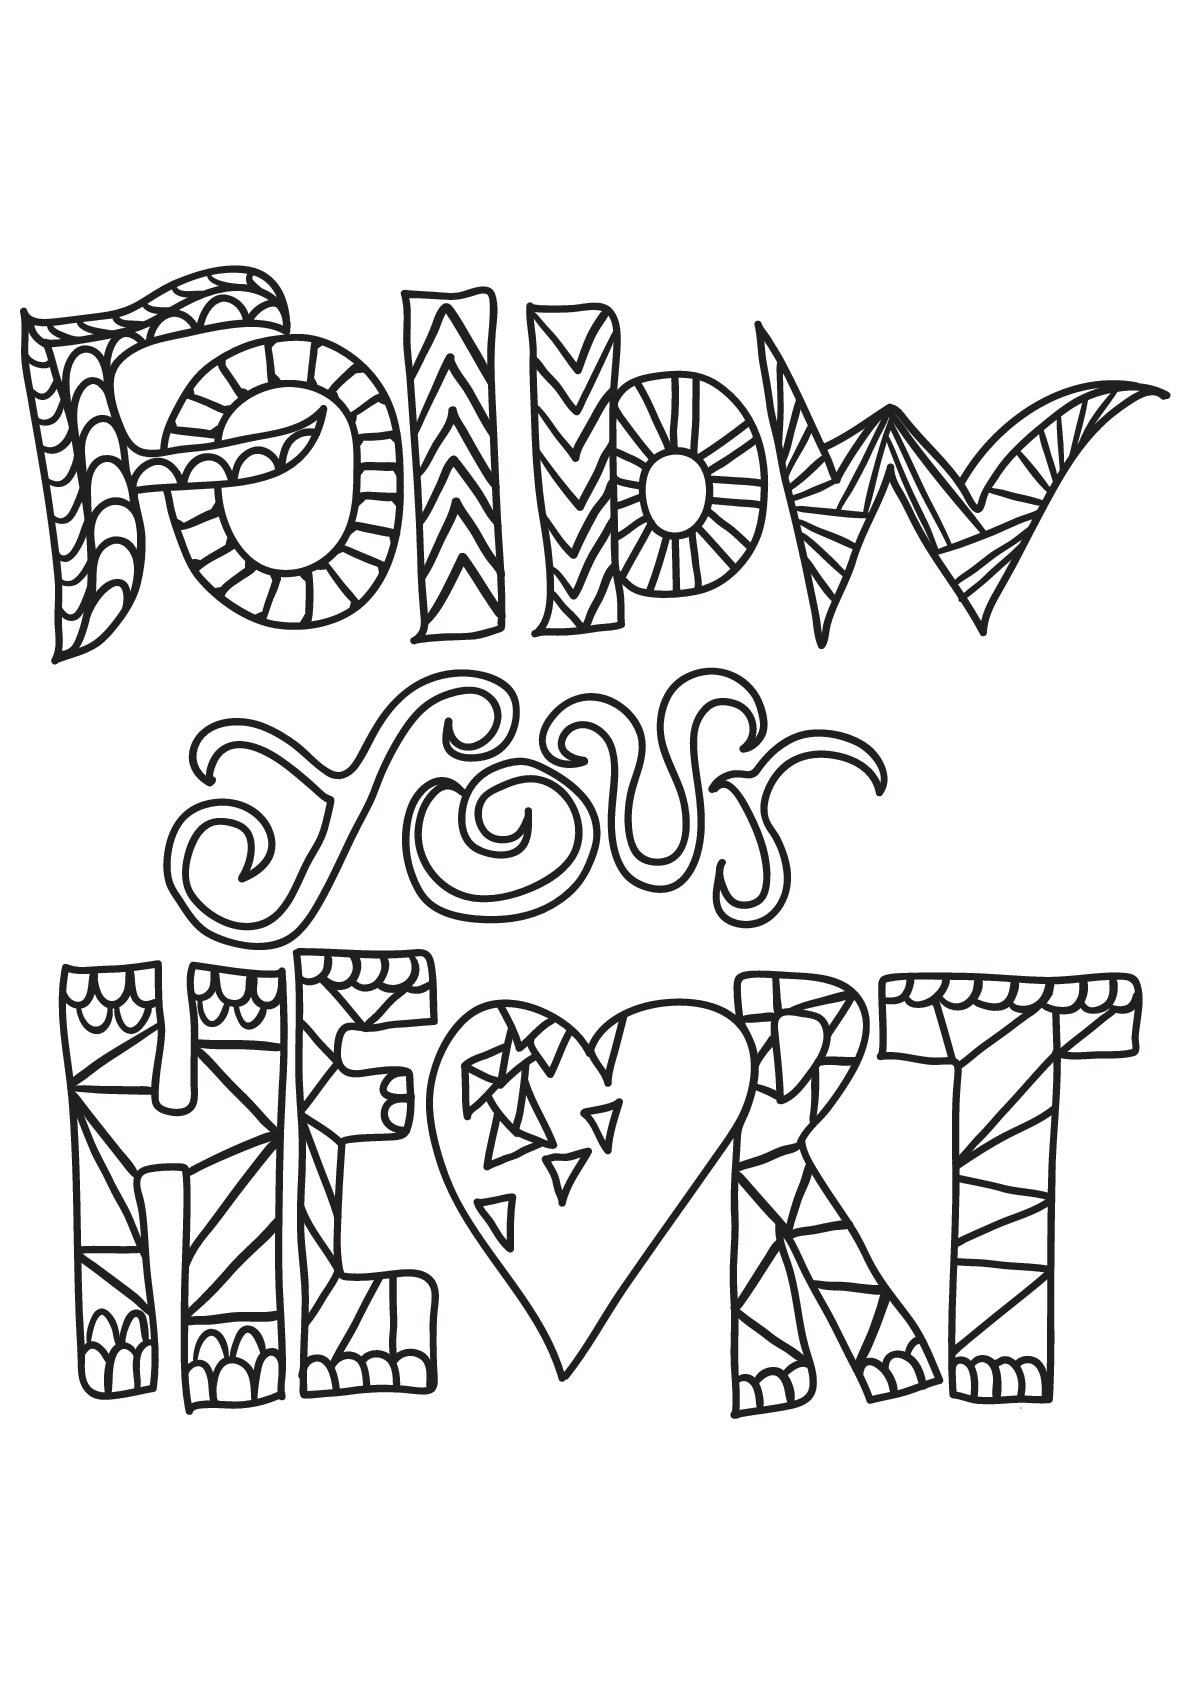 Free book quote 6 - Quotes Adult Coloring Pages   colouring pages for adults quotes